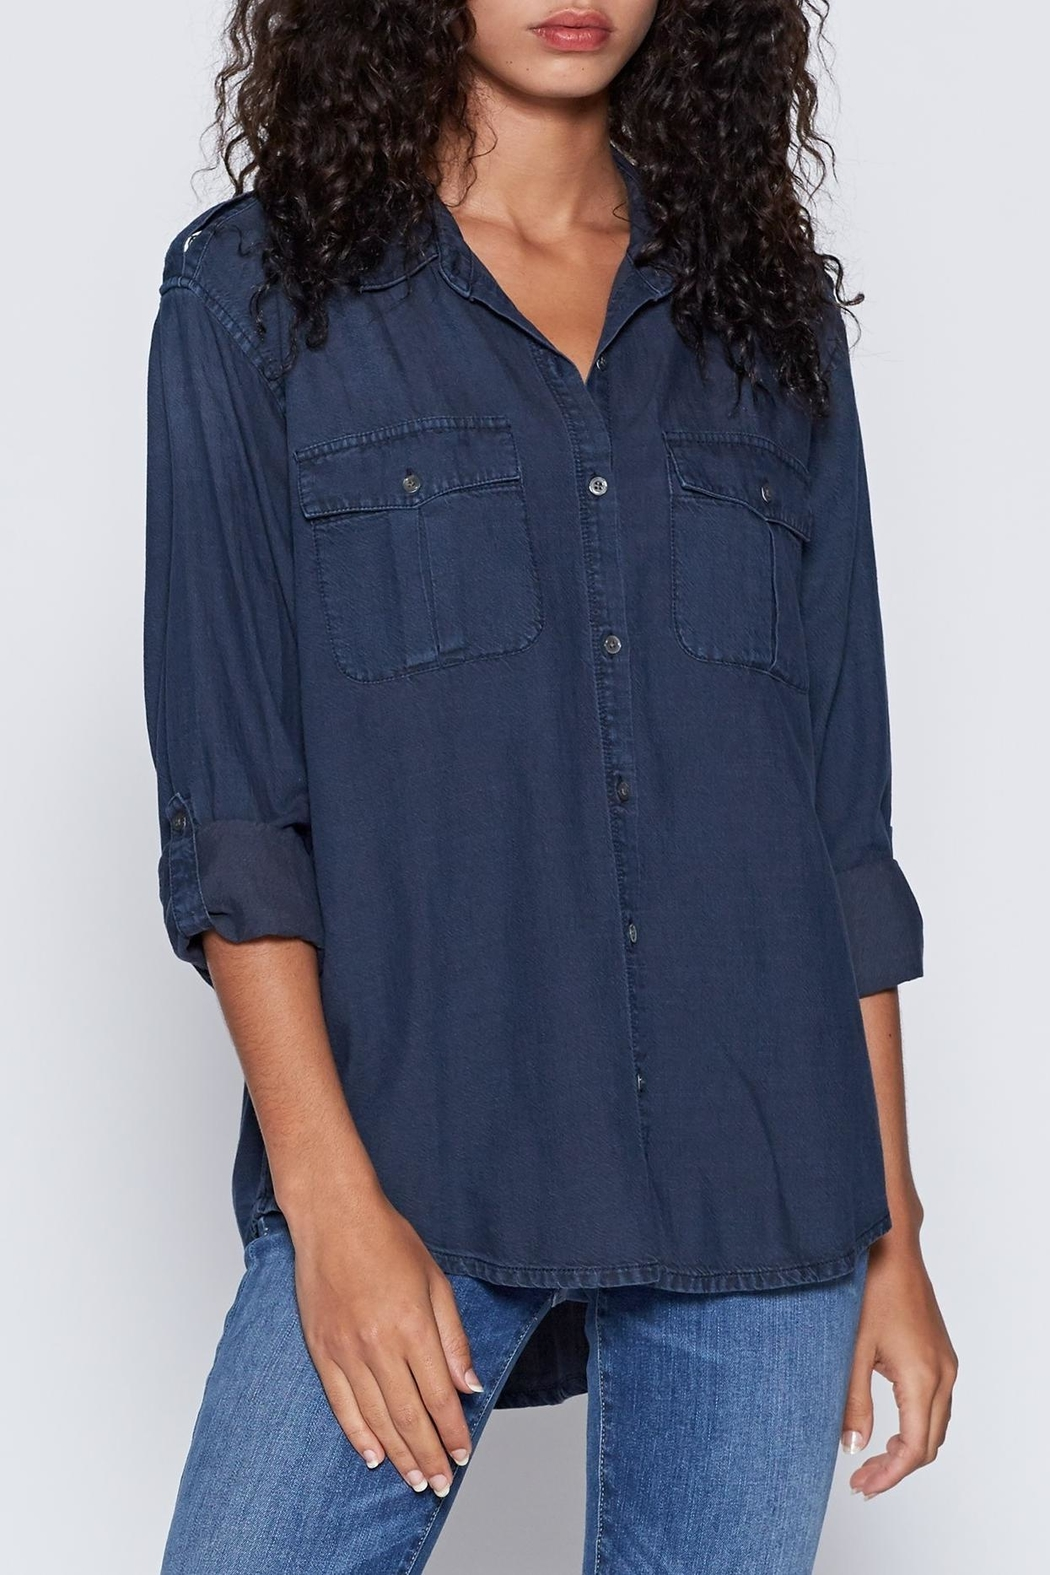 Joie Lidelle Chambray Top - Main Image